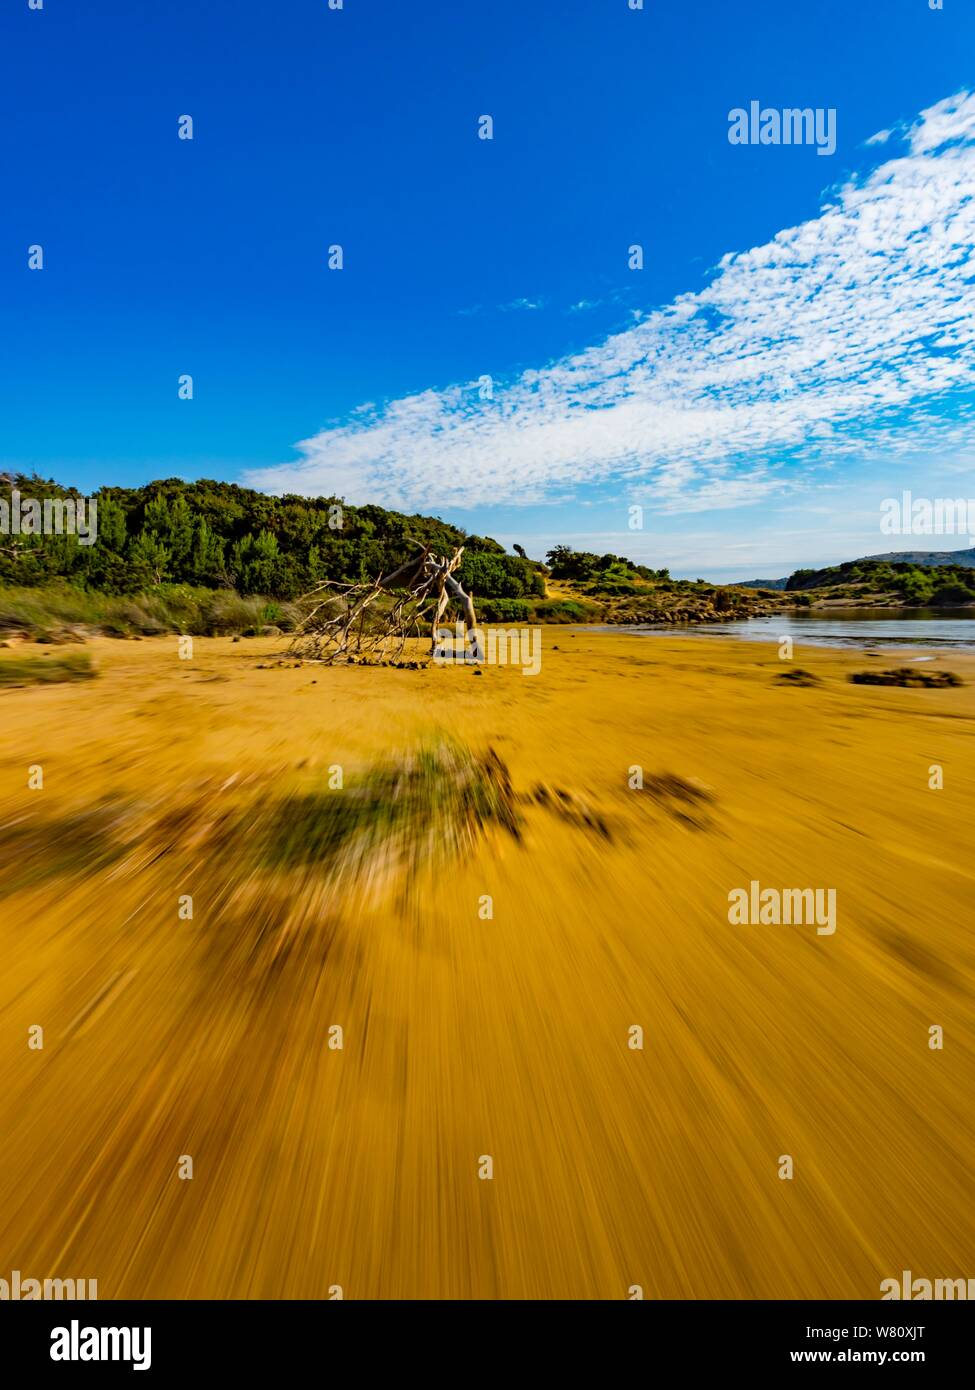 Sandy beach vacated vacant countryside speeding low view along wooden framework focused in center in distance Stock Photo